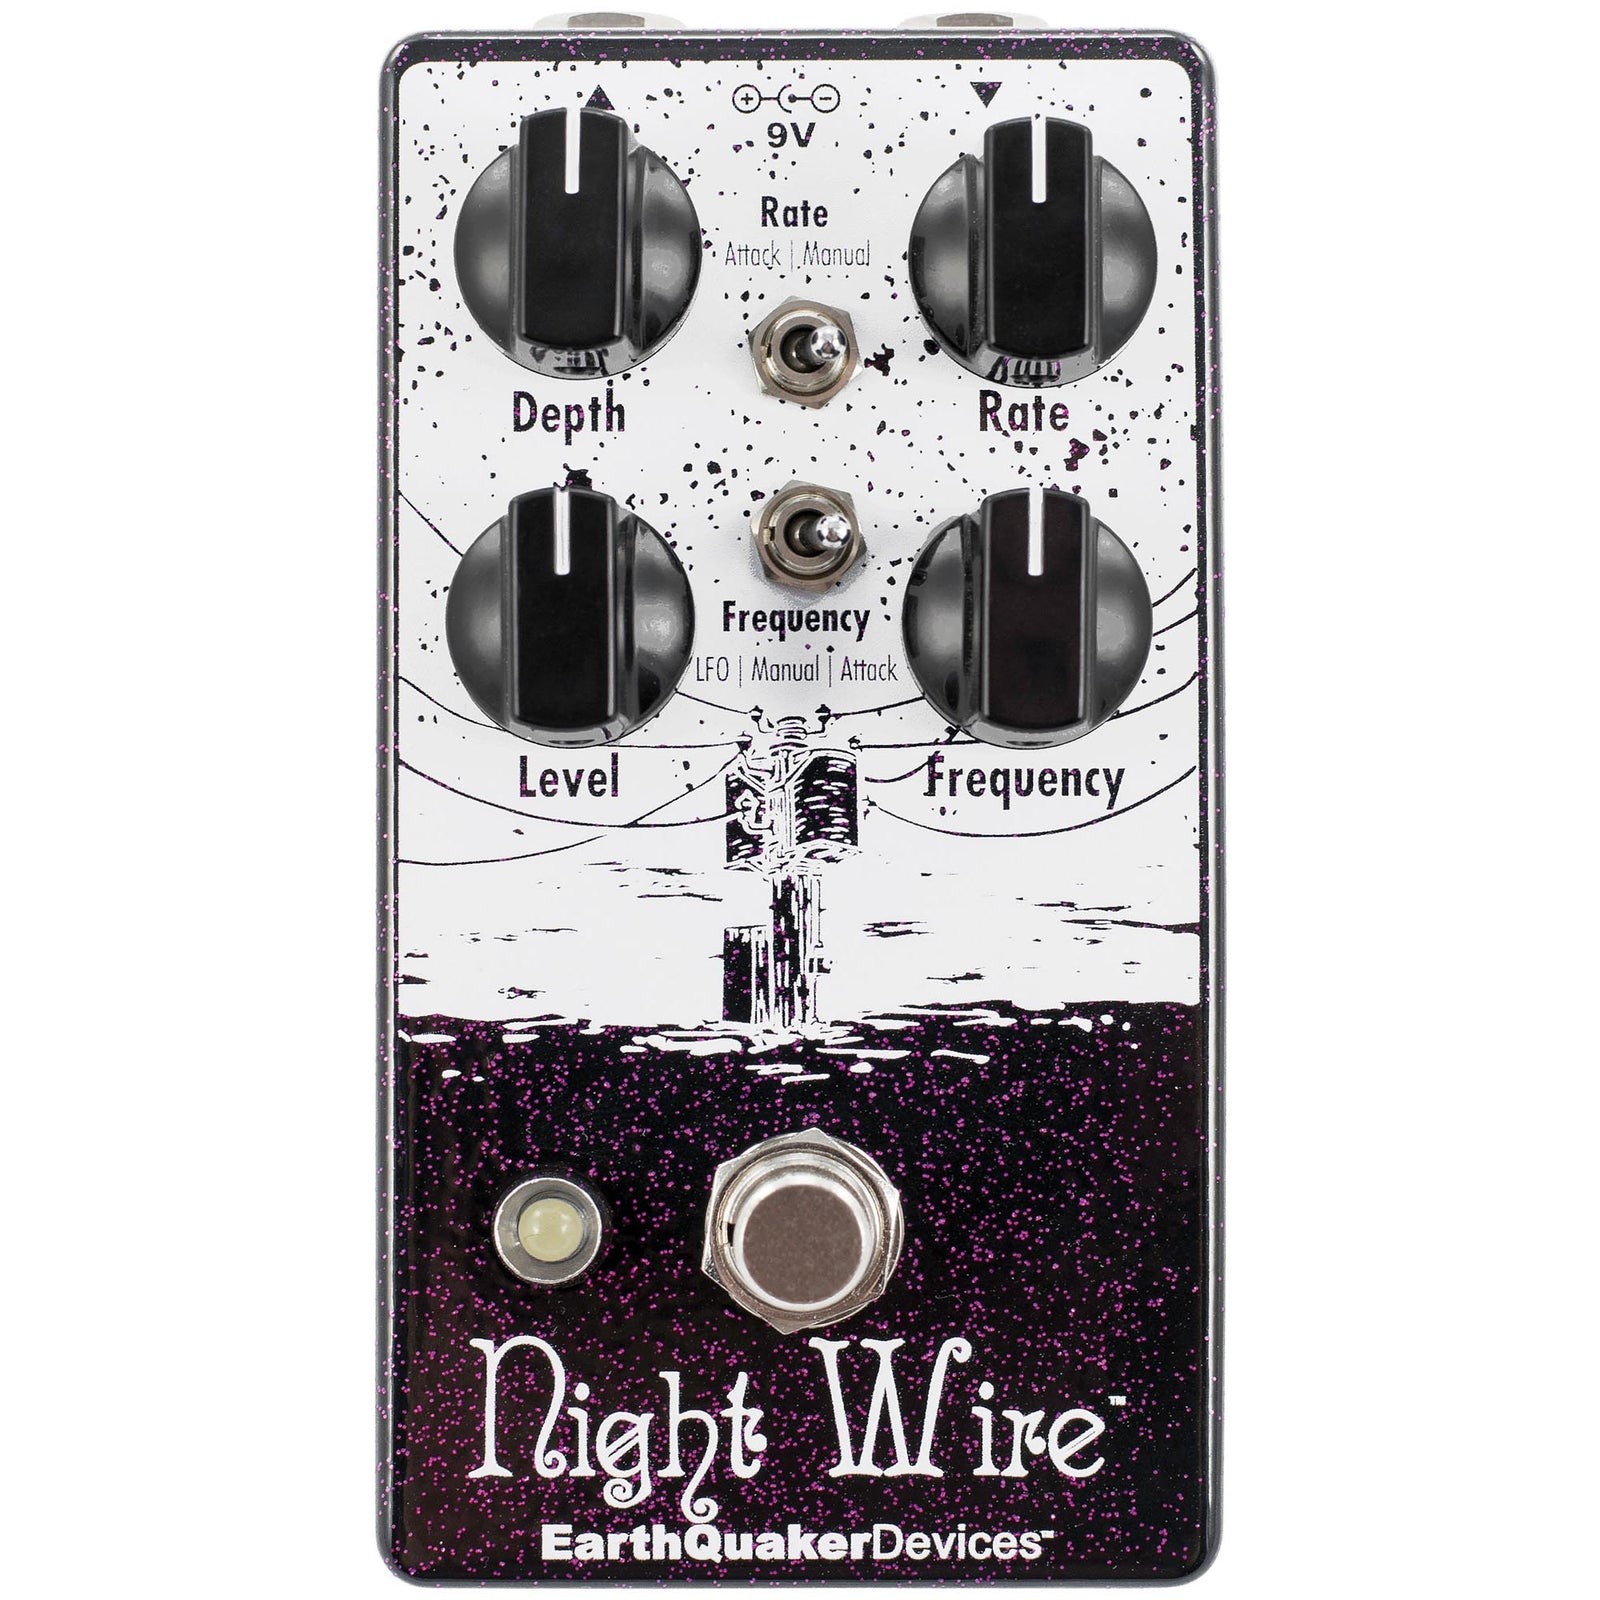 Earthquaker Night Wire V2 Harmonic Tremolo